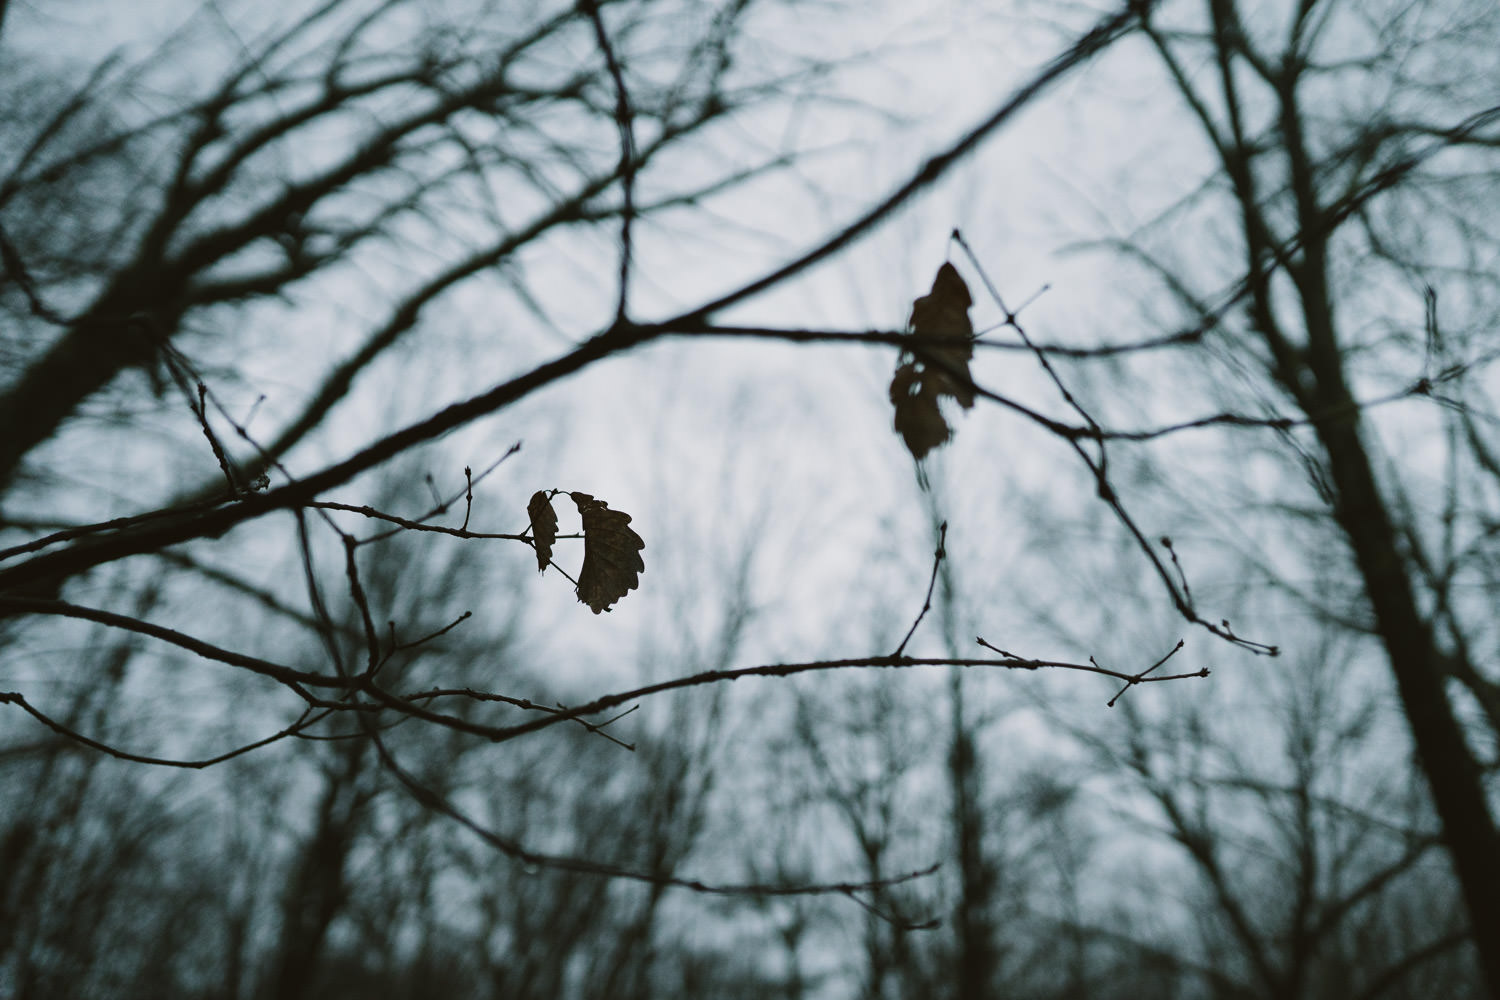 A few dead leaves hang off a bare branch.